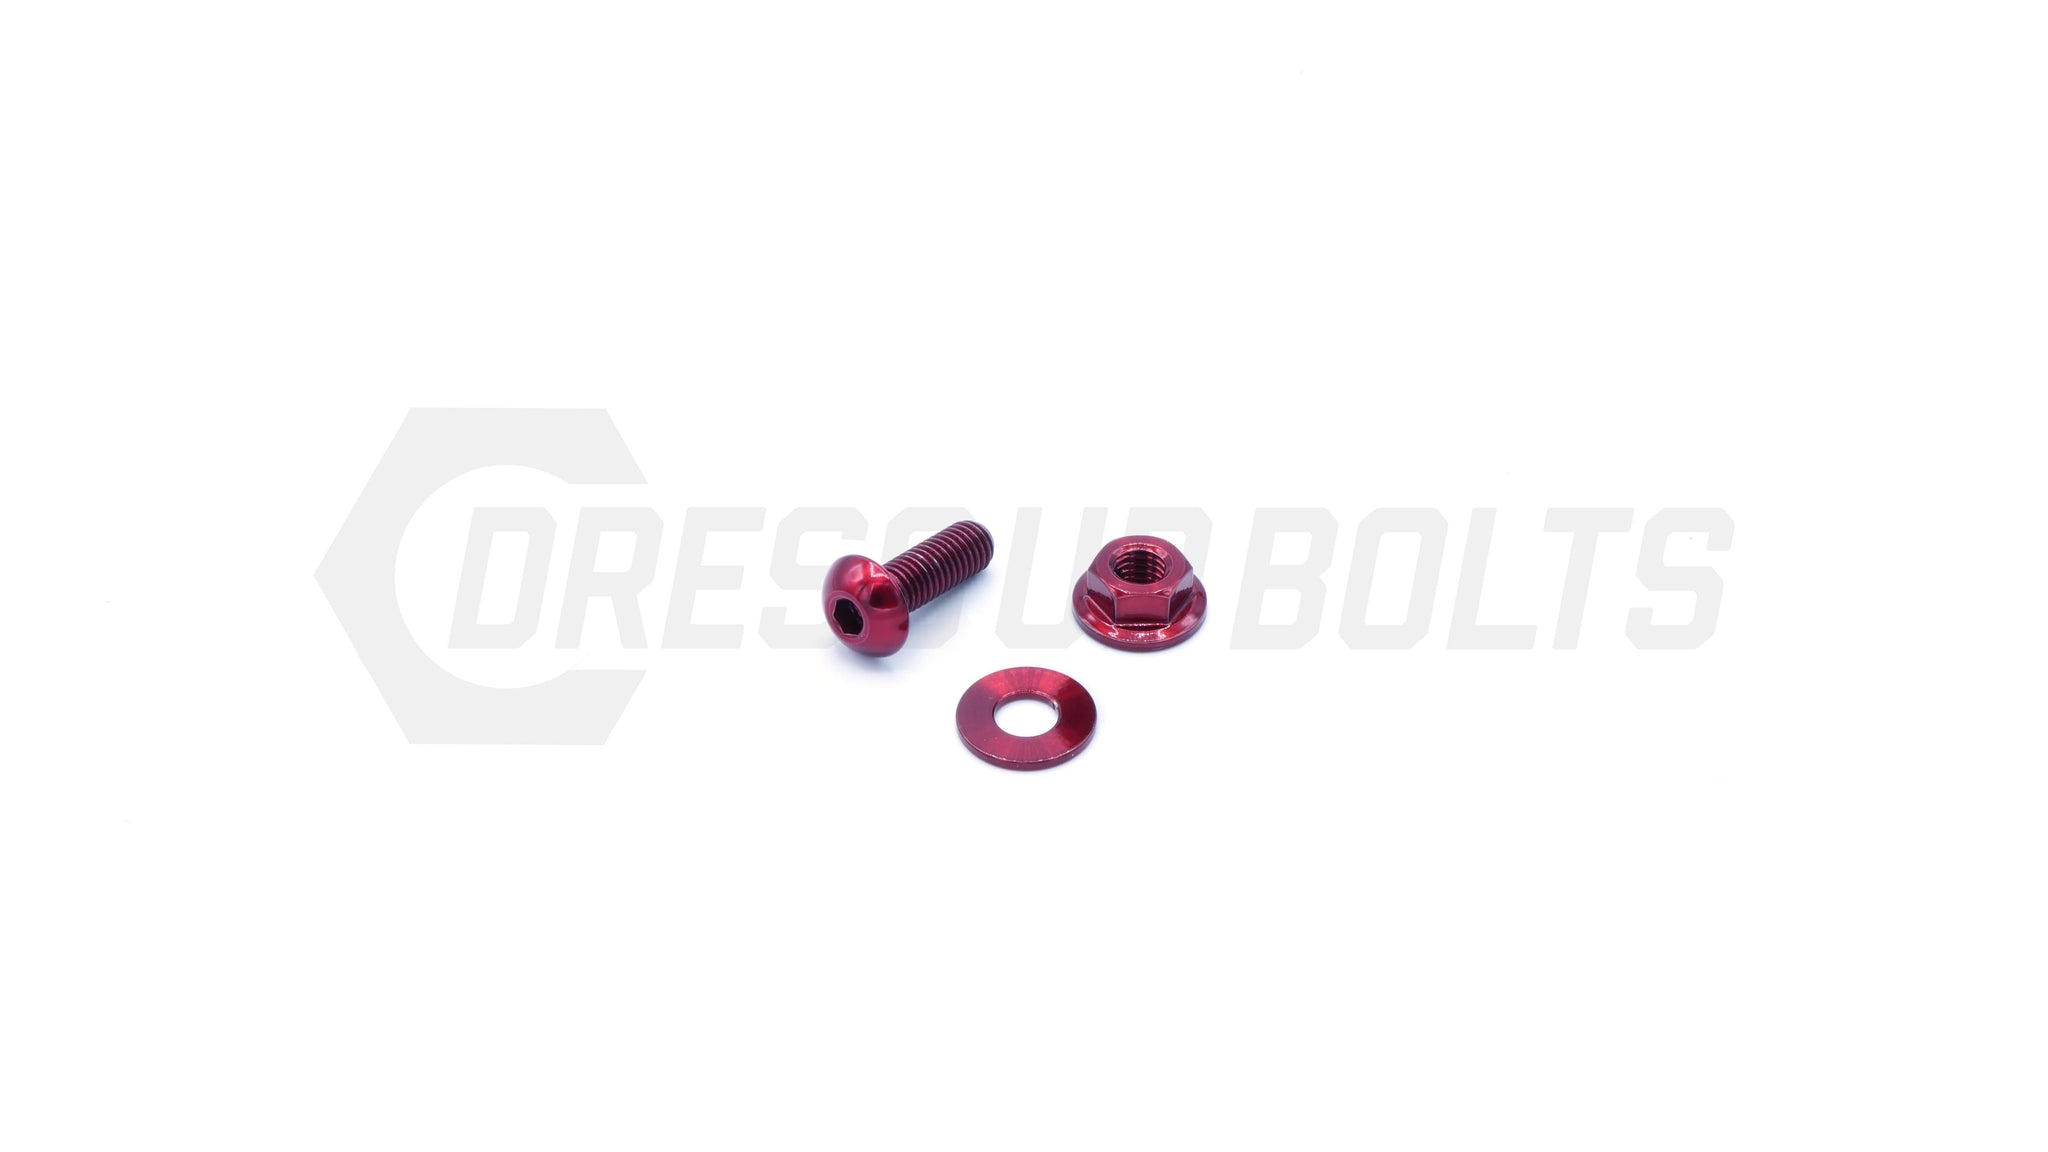 Dress Up Bolts Titanium Widebody Hardware - Combo 7 - DressUpBolts.com